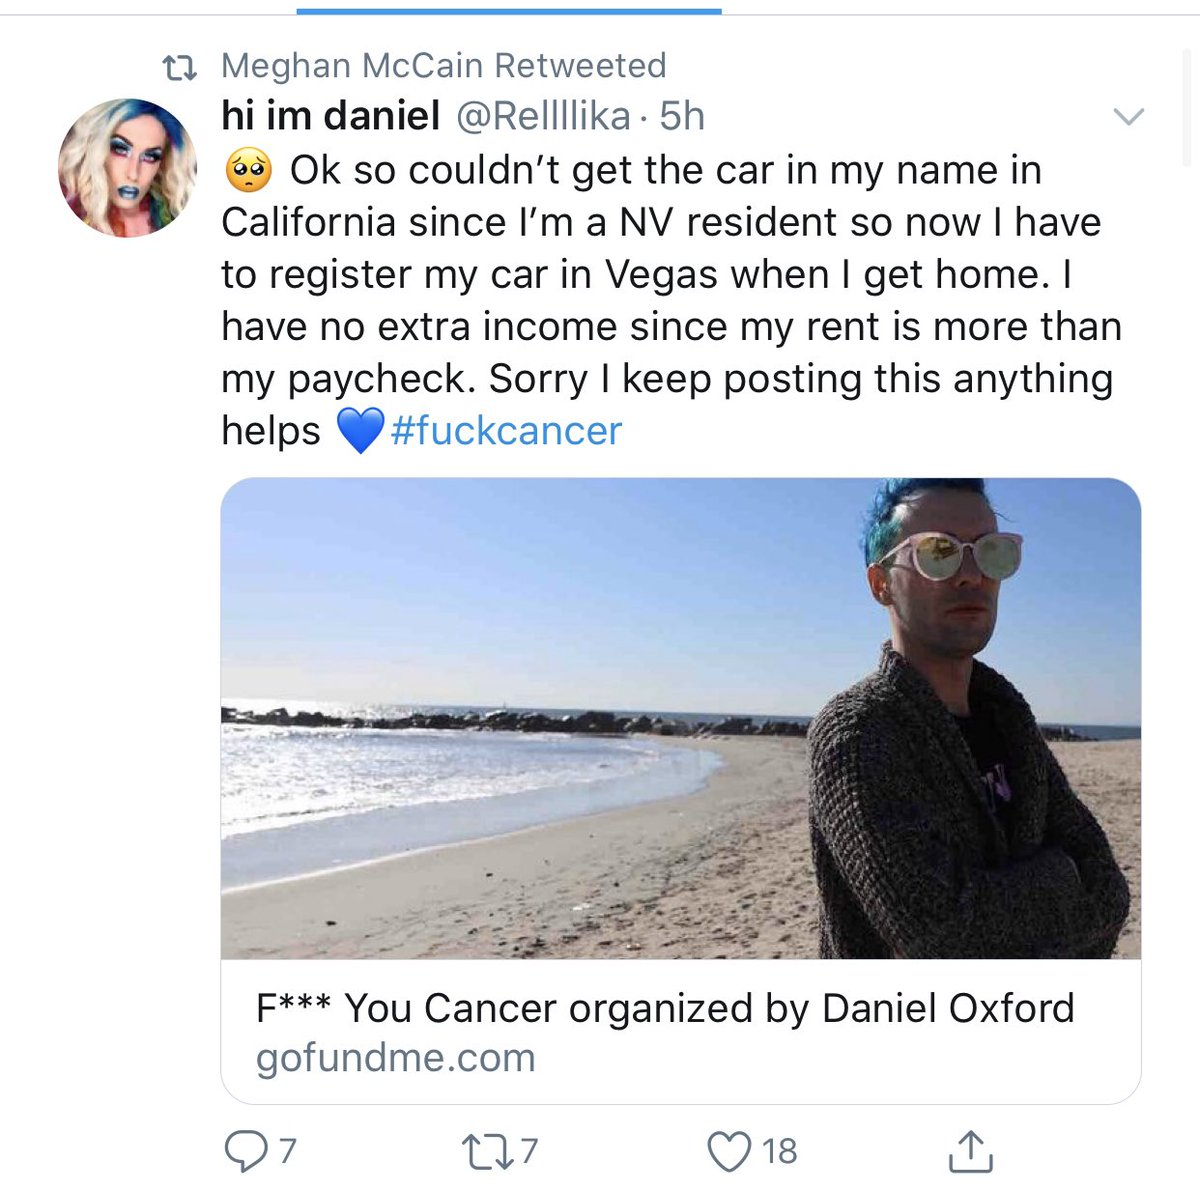 The irony of @MeghanMcCain being to adamantly anti-socialism, anti-Sanders and anti-universal healthcare... while retweeting gofundme's to get people healthcare and pay healthcare bills is not lost on me. pic.twitter.com/4XZGO1uUd0